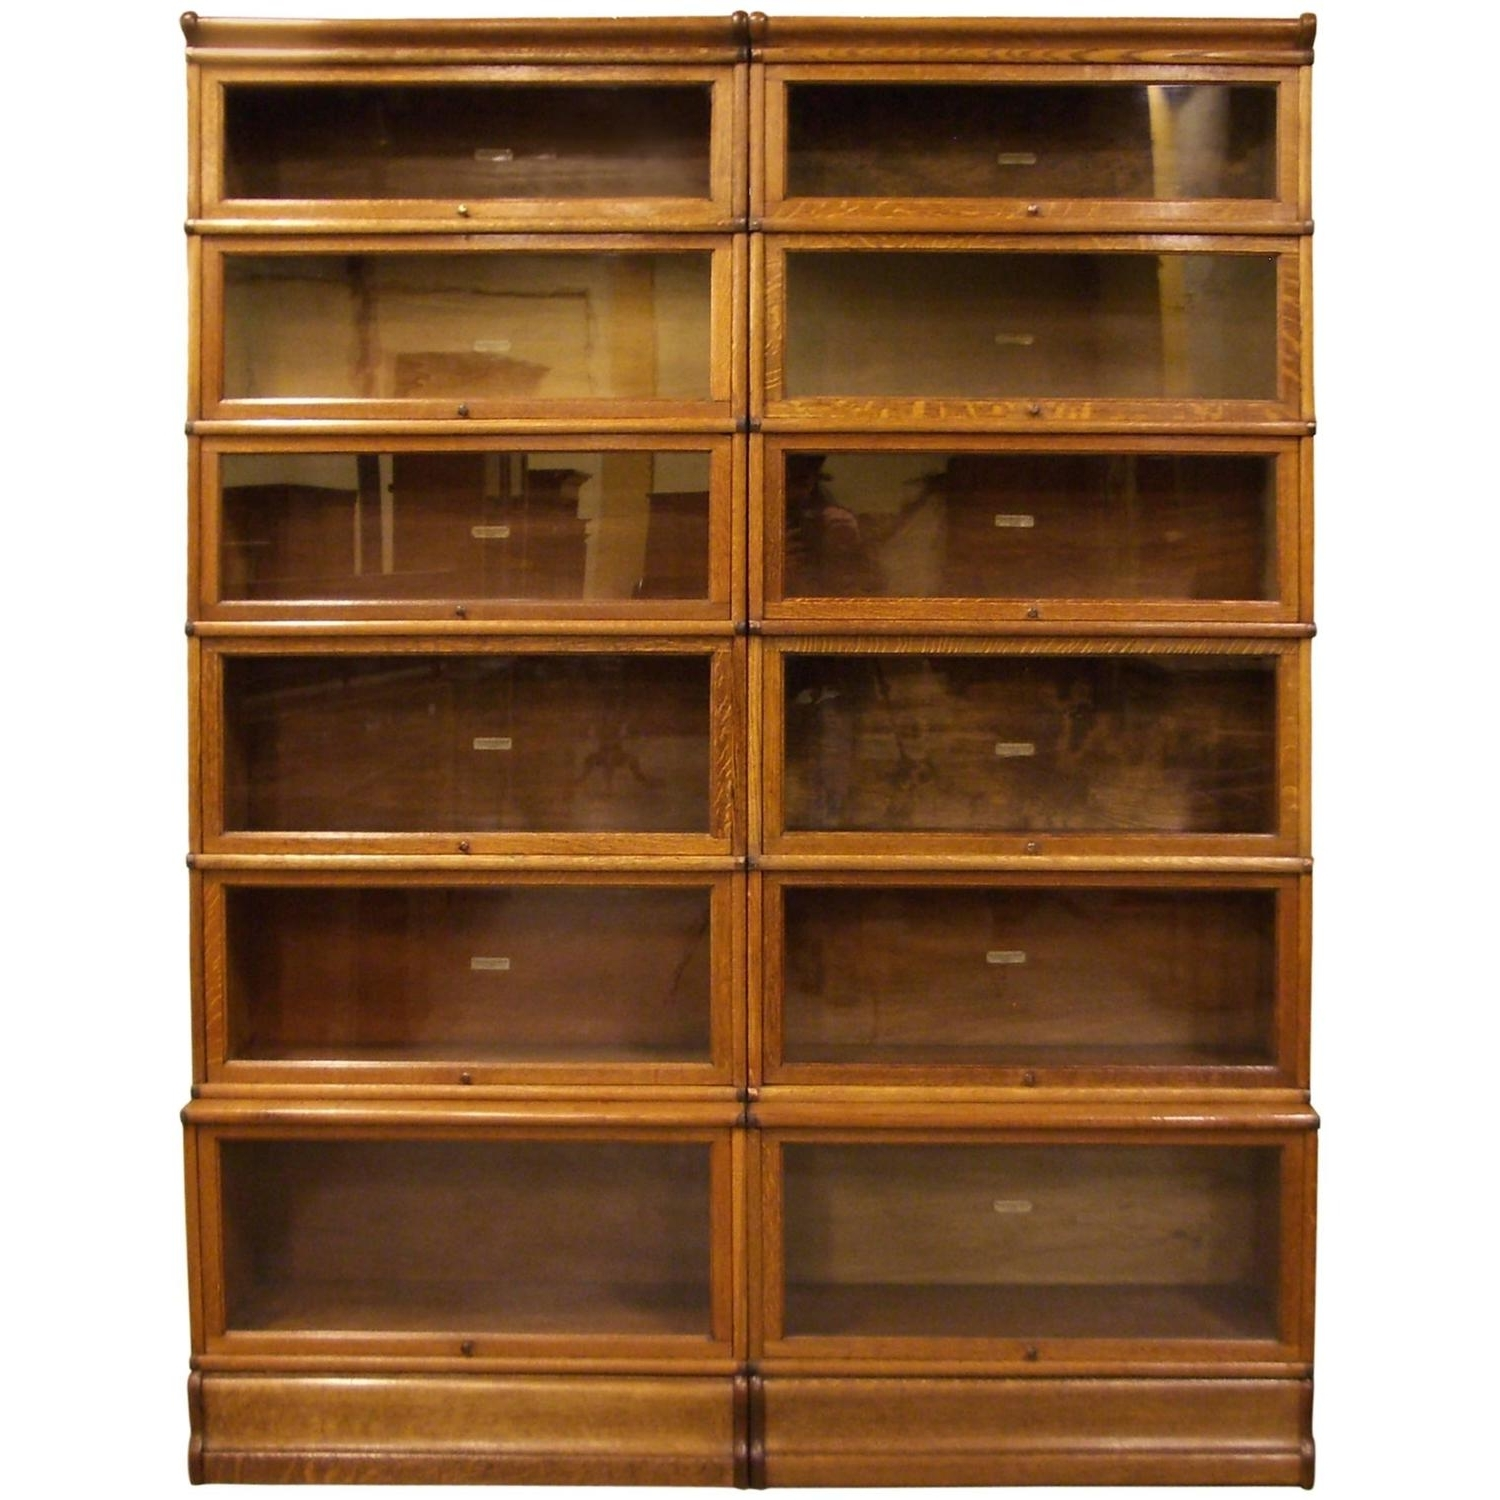 Best 15 Of Globe Wernicke Bookcases